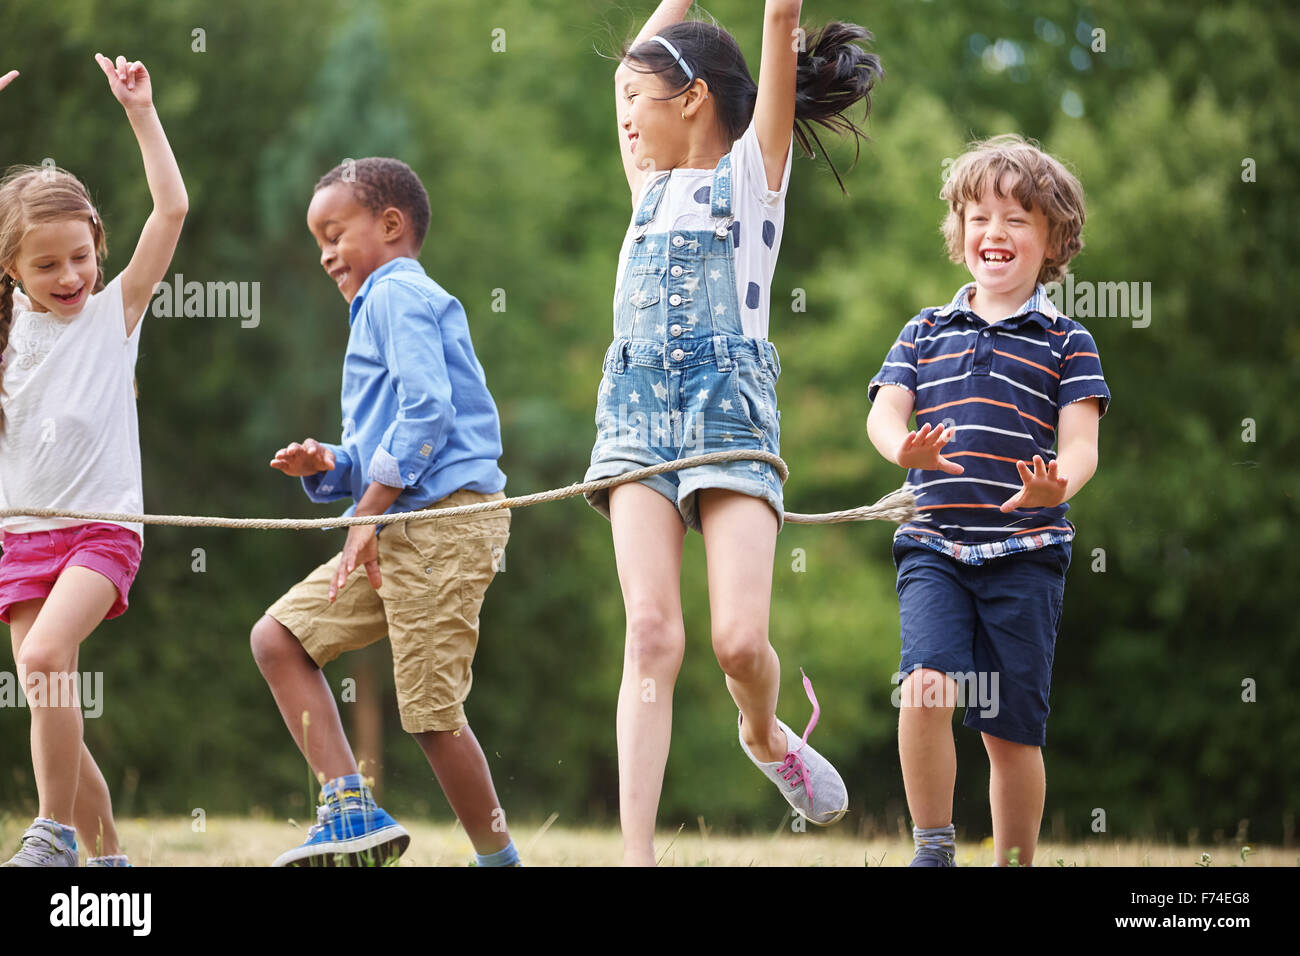 Interracial group of kids arriving the finish line at a friendly race - Stock Image